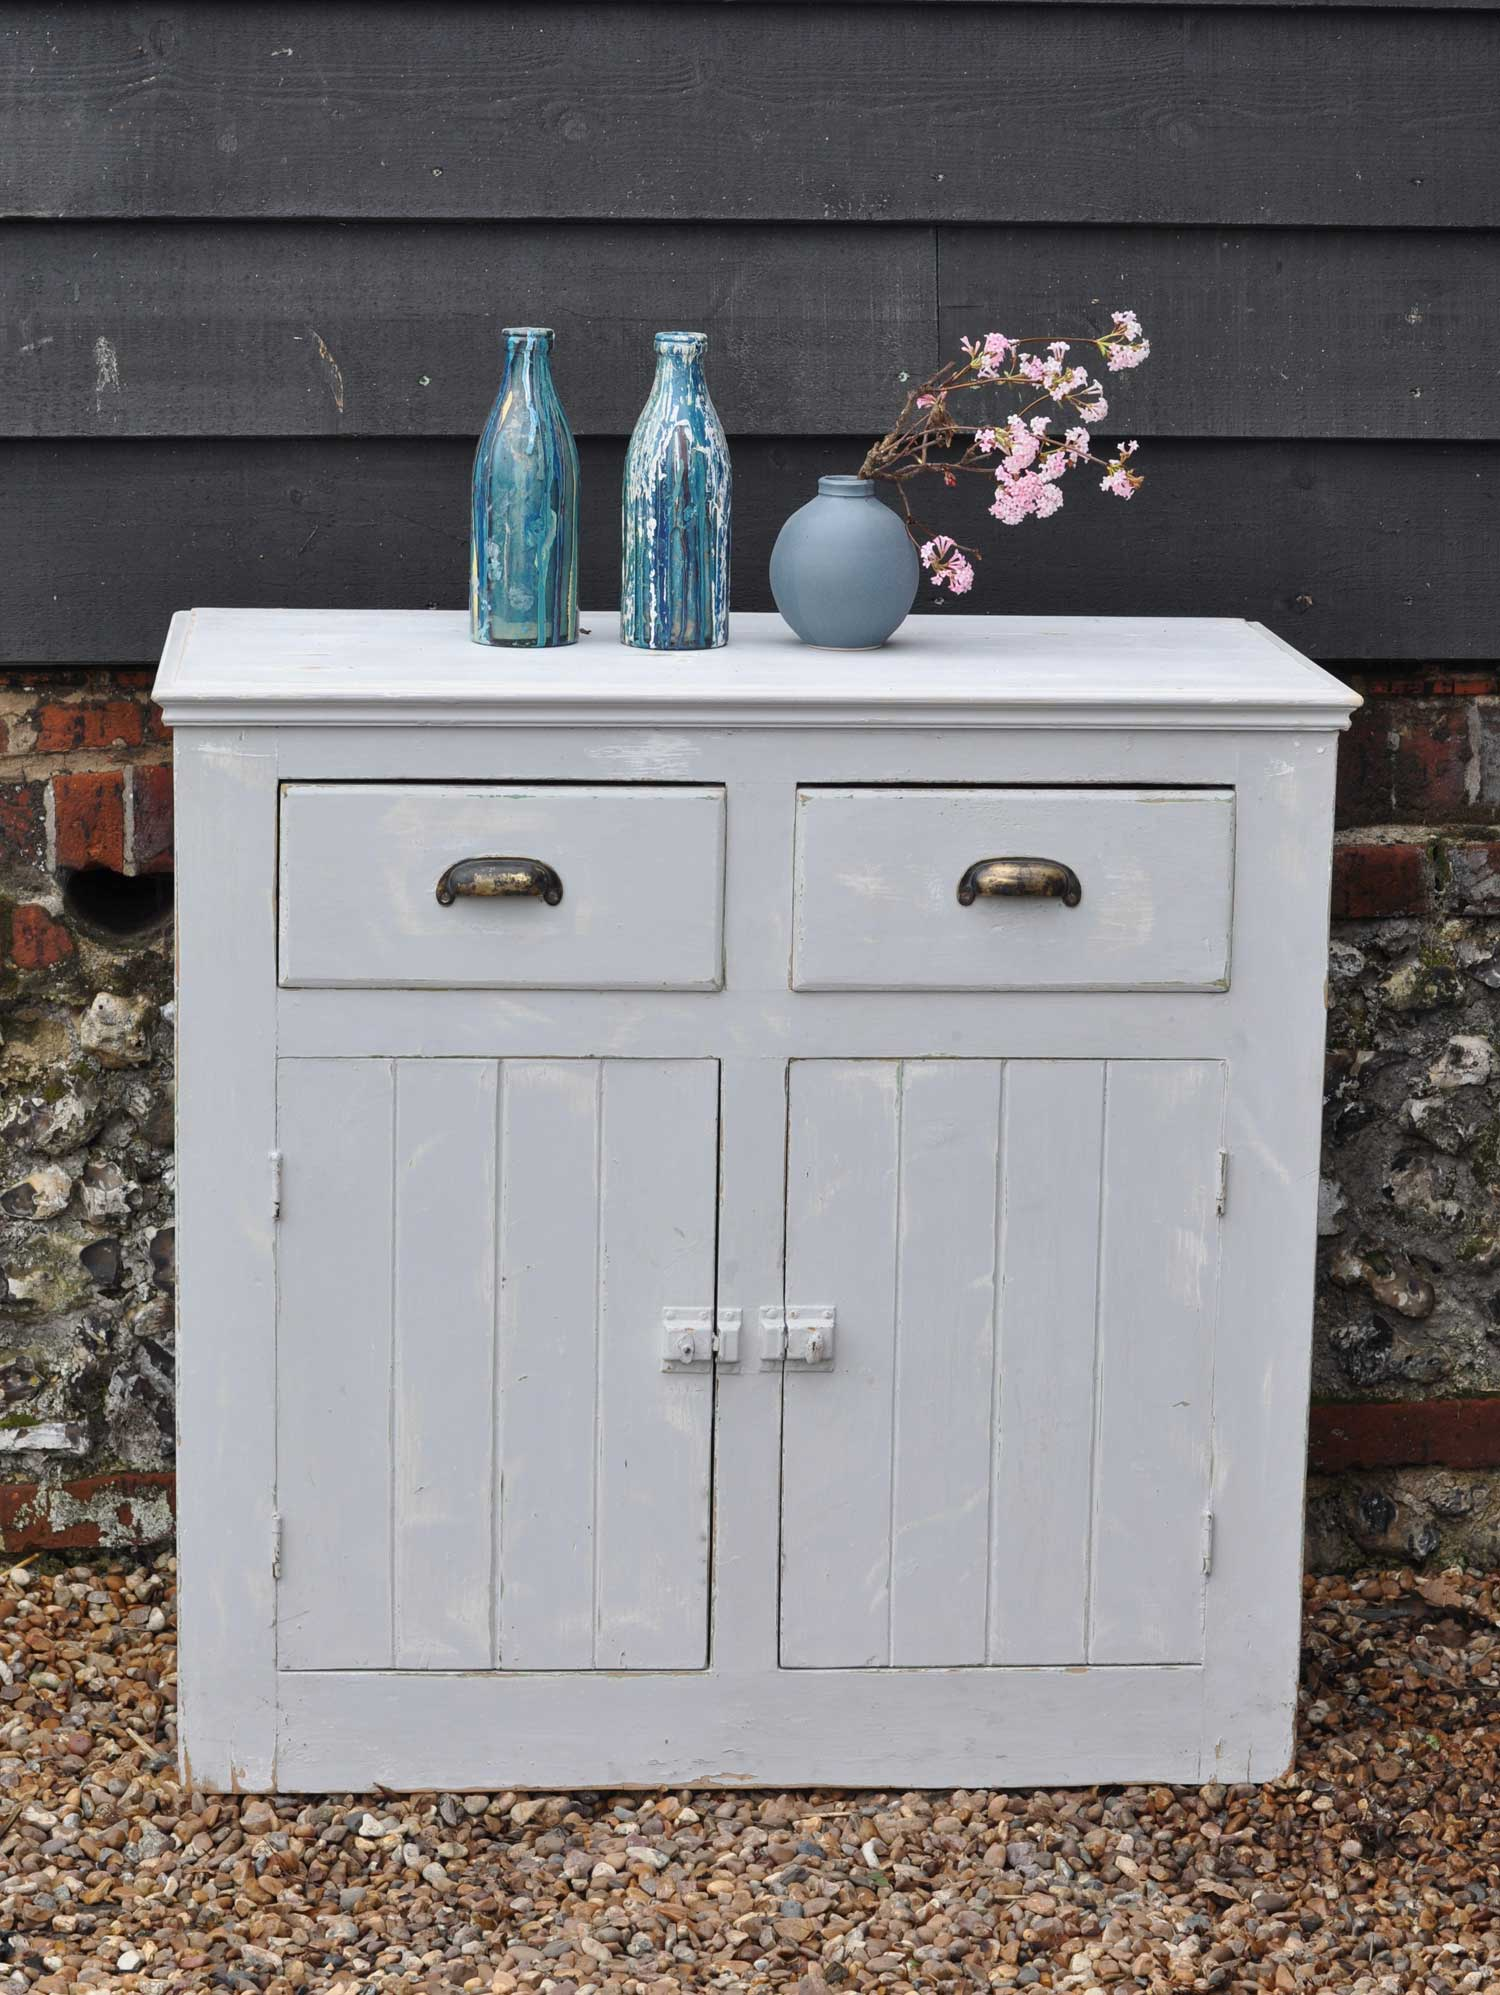 Vintage Two Door & Drawer Cabinet With Original Pale Grey Paintwork